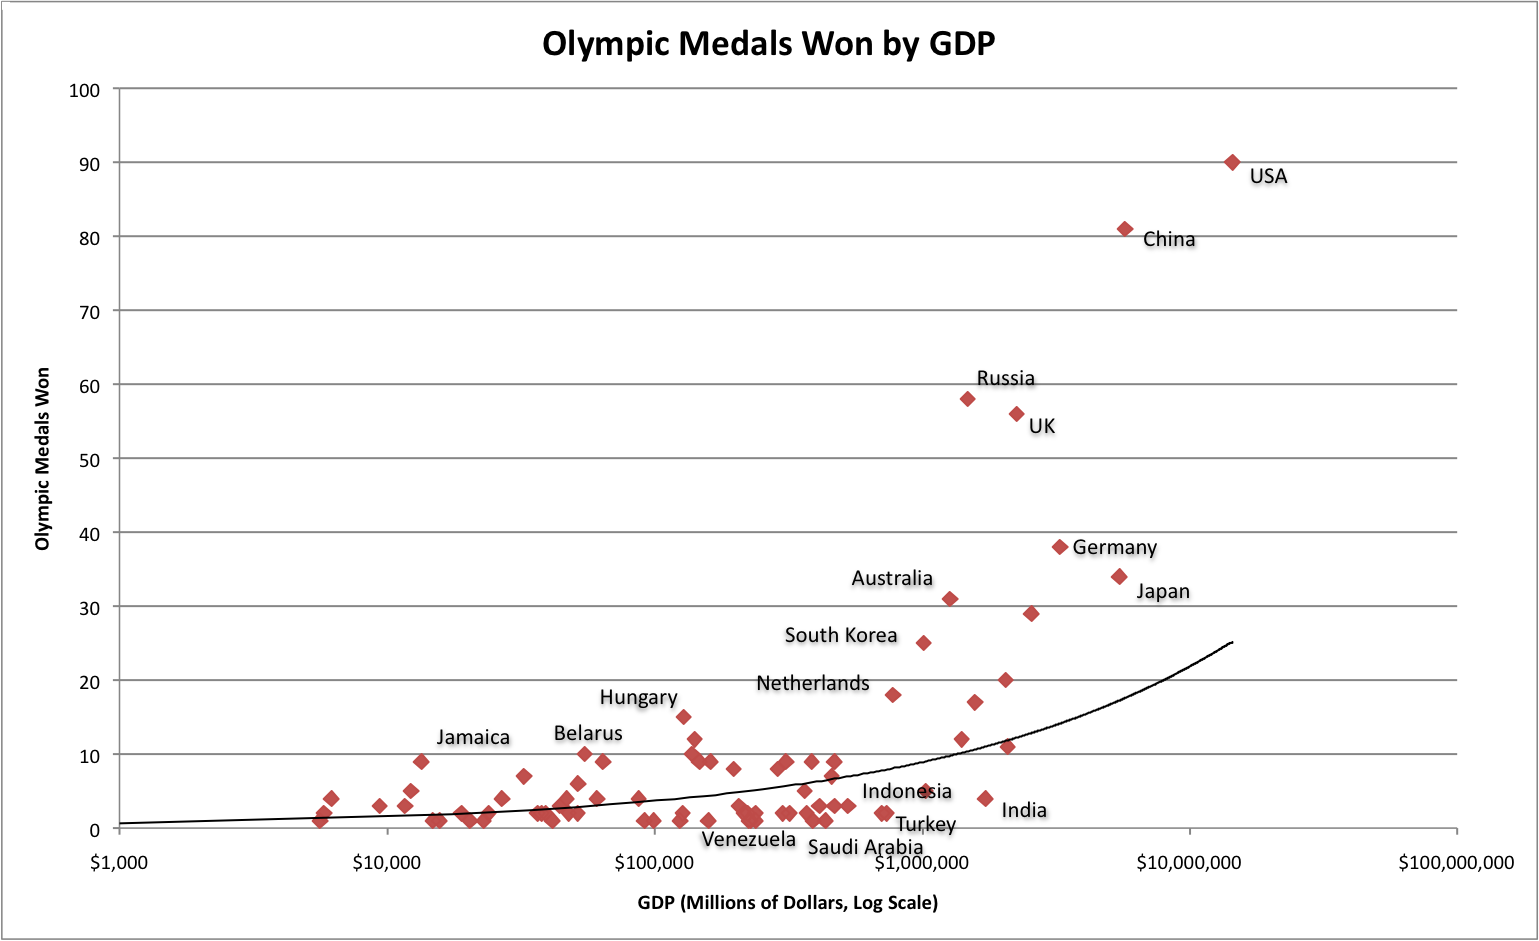 olympics 2012 an economic analysis The economic impact of the london 2012 olympics adam blake 2005/5  - 2 - the economic impact of the london 2012 olympics  (bureau of economic analysis 2002), while smaller tables of around 20 to 50 products and industries are more common.